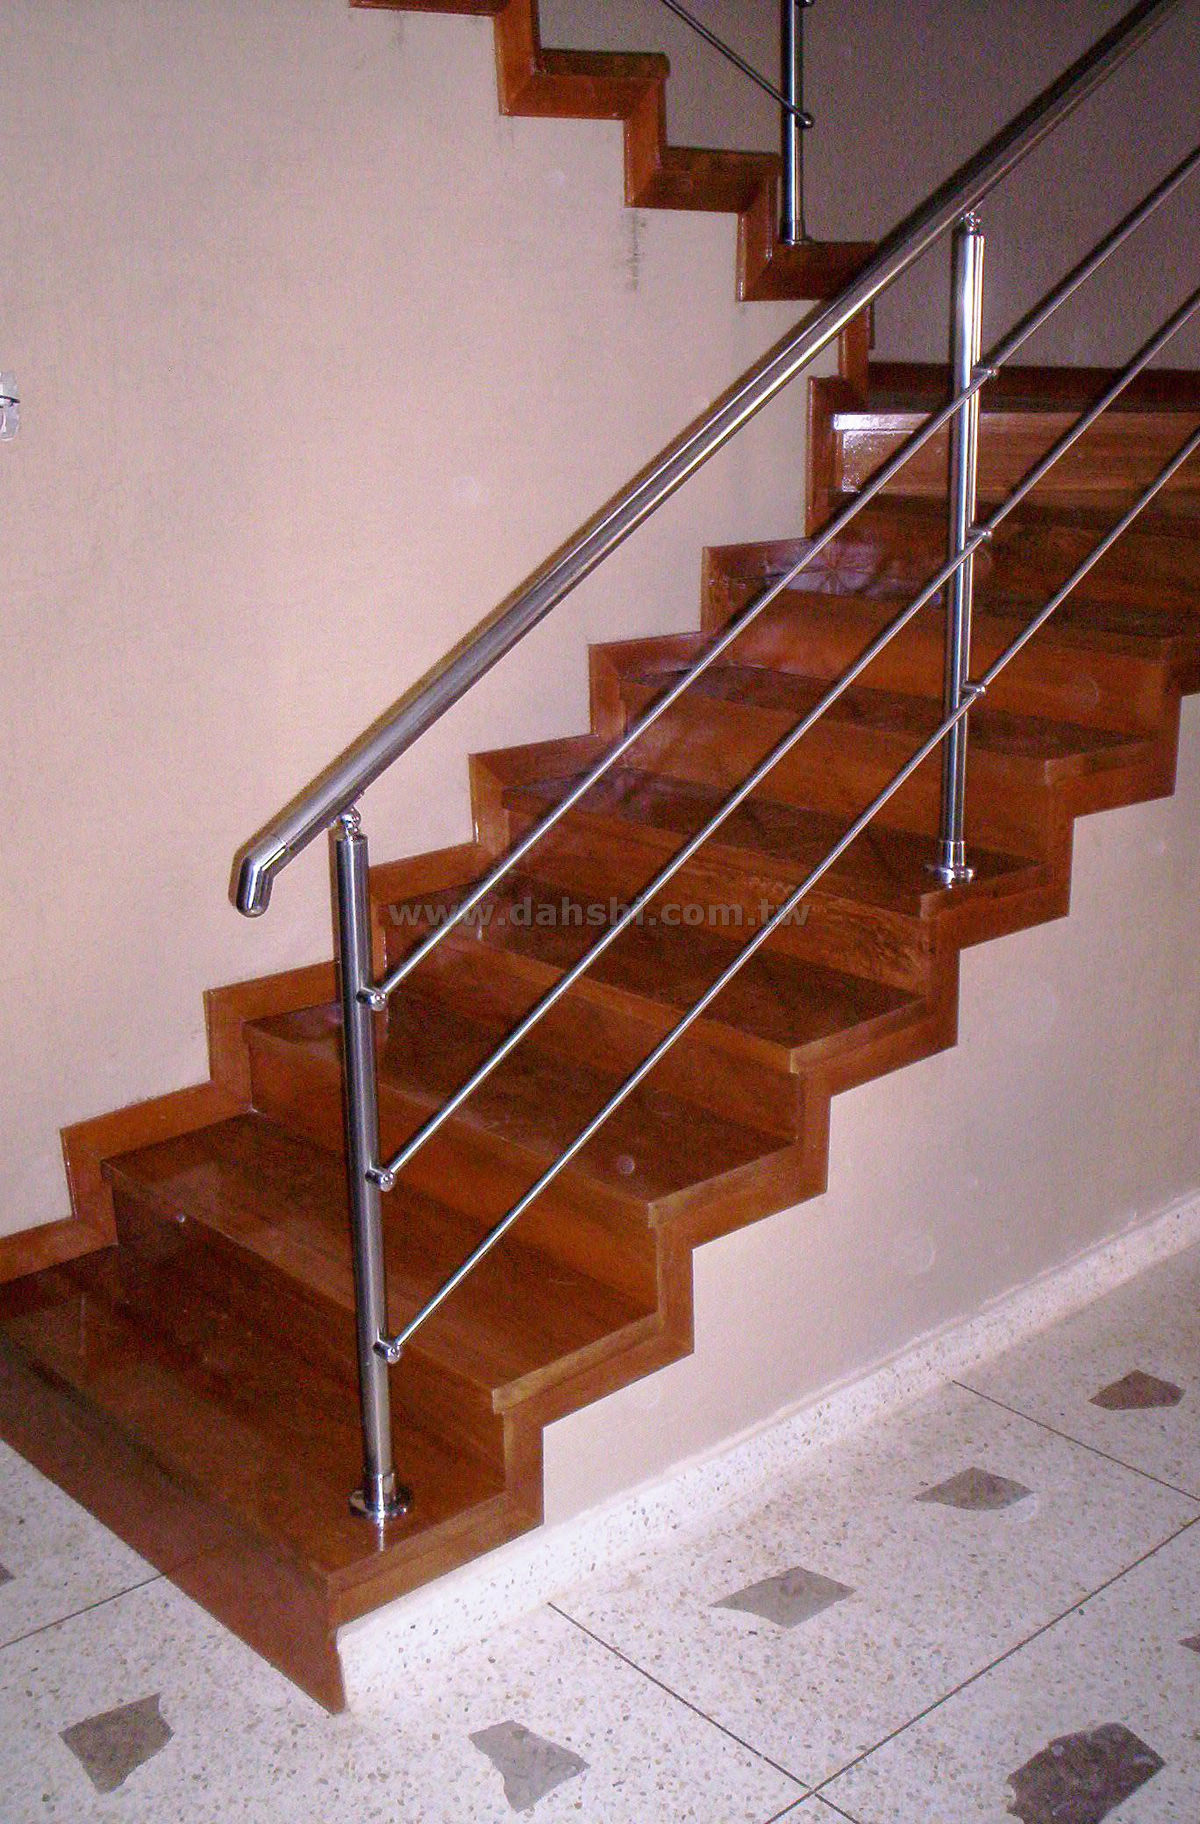 Handrail and Balusters Story for Angel Urdaneta